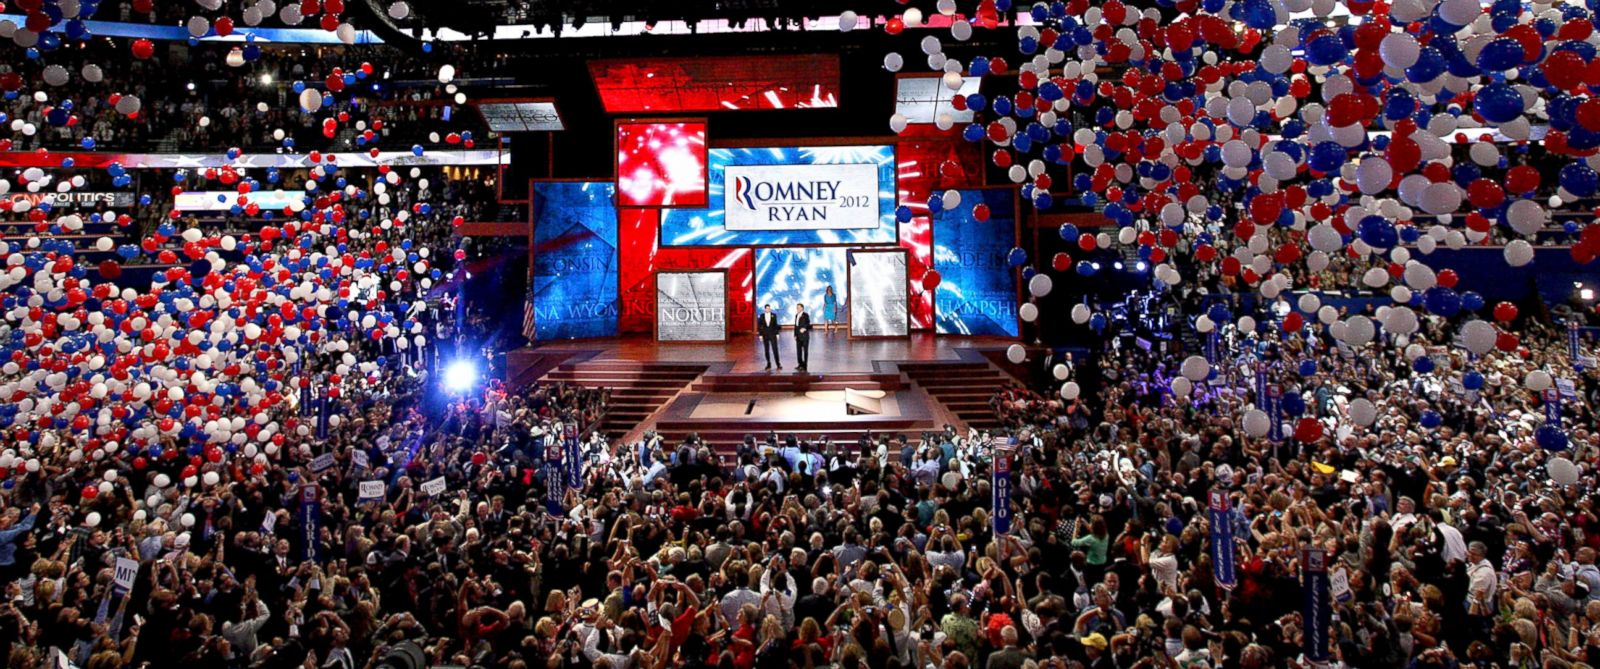 PHOTO: Balloons fall at the Republican National Convention (RNC) in Tampa, Flori, Aug. 30, 2012.